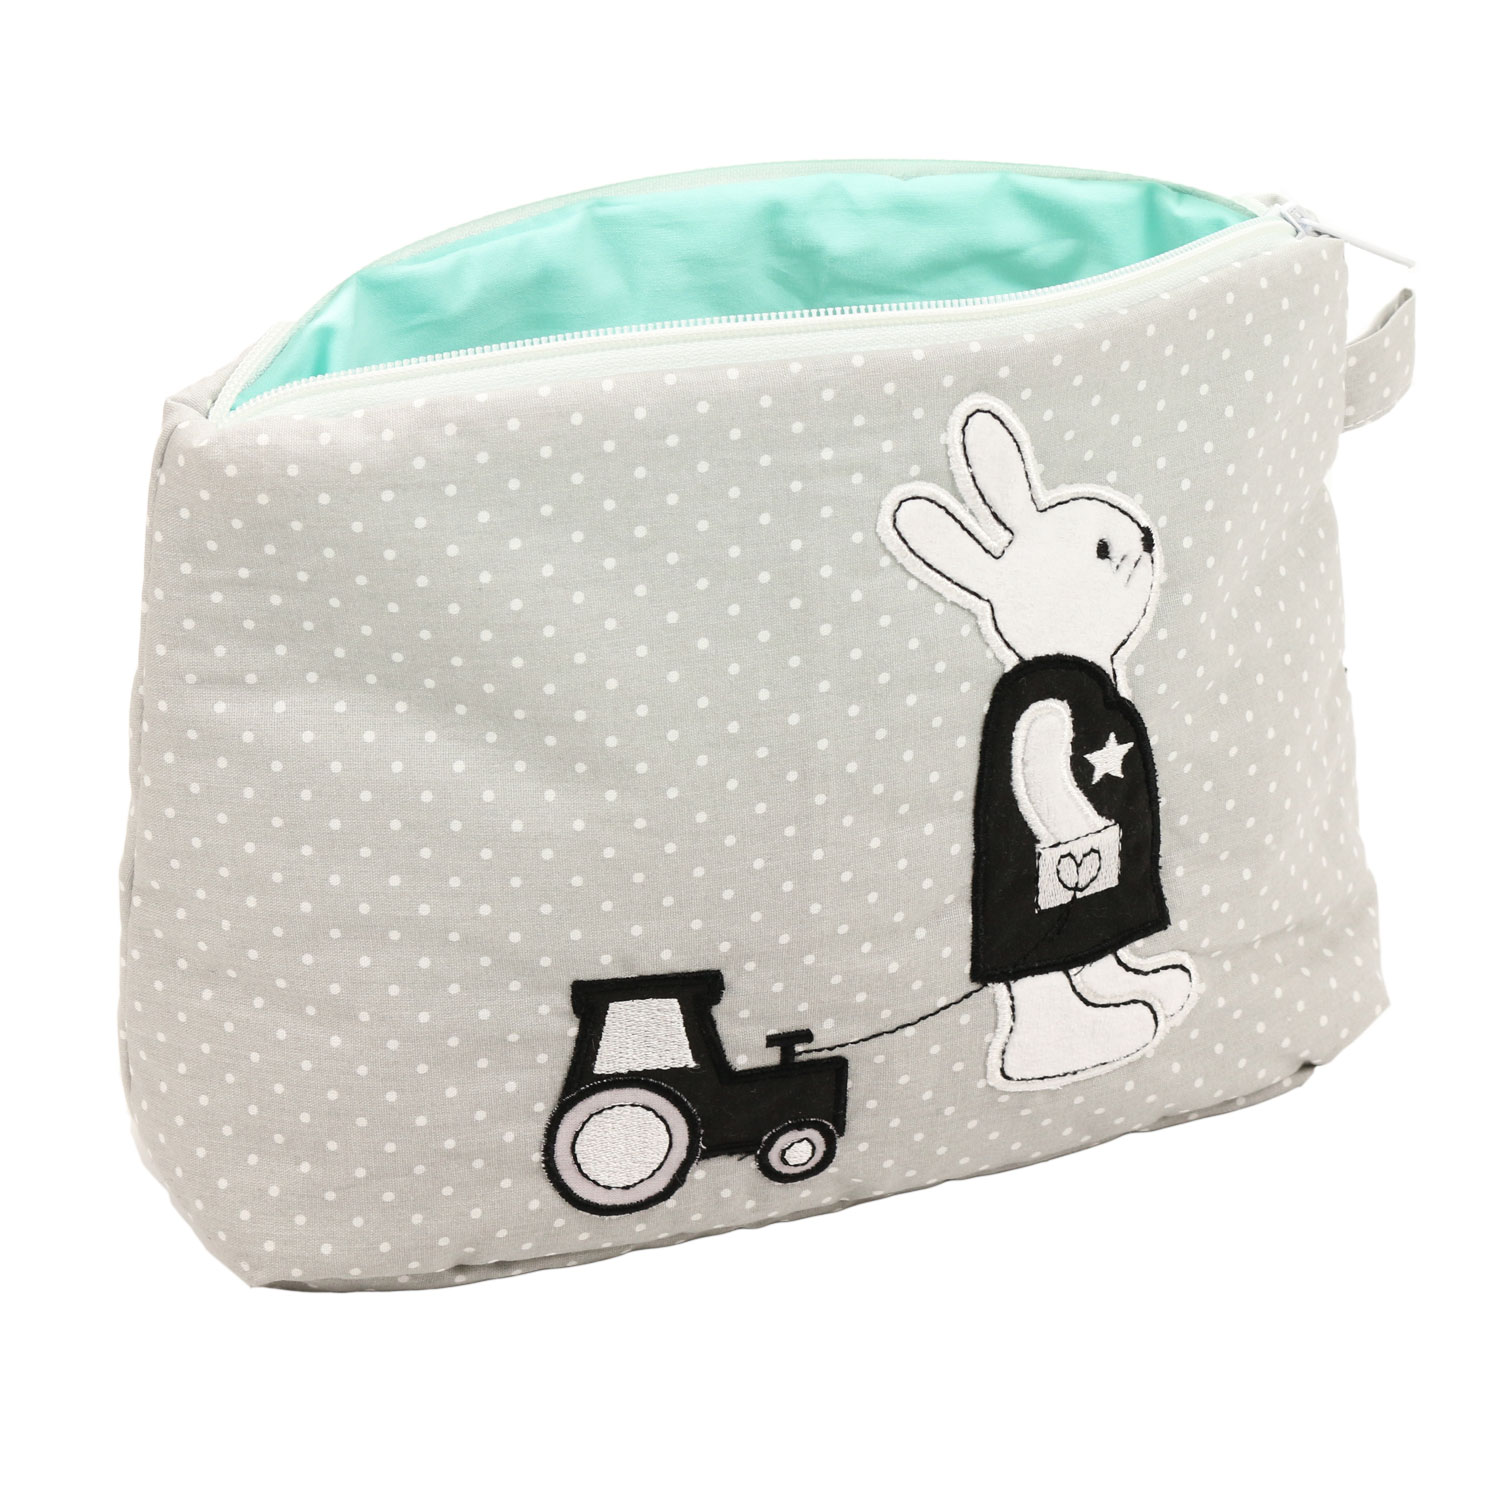 781b806d3b10d BABY LAL® by Peri - INTERIOR FOR KIDS aus Berlin - ☆ HASENJUNGE ...